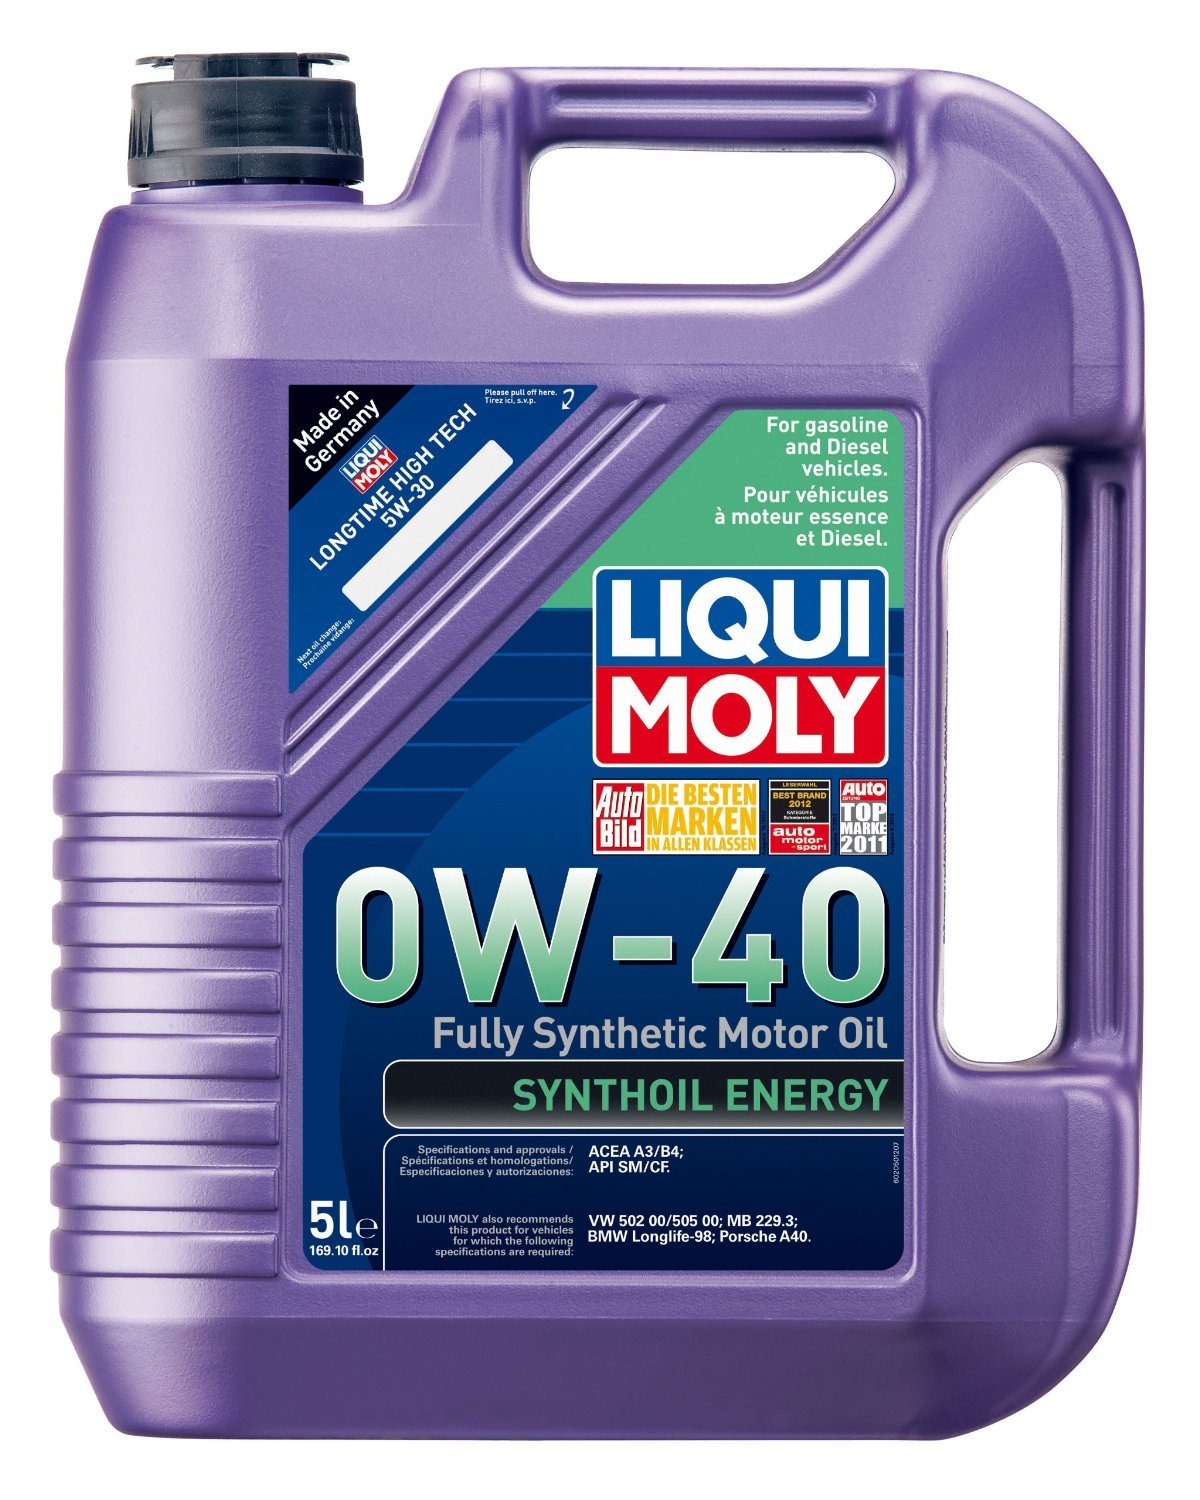 Liqui Moly (2050-4PK) Synthoil Energy 0W-40 Motor Oil - 5 Liter, (Pack of 4)